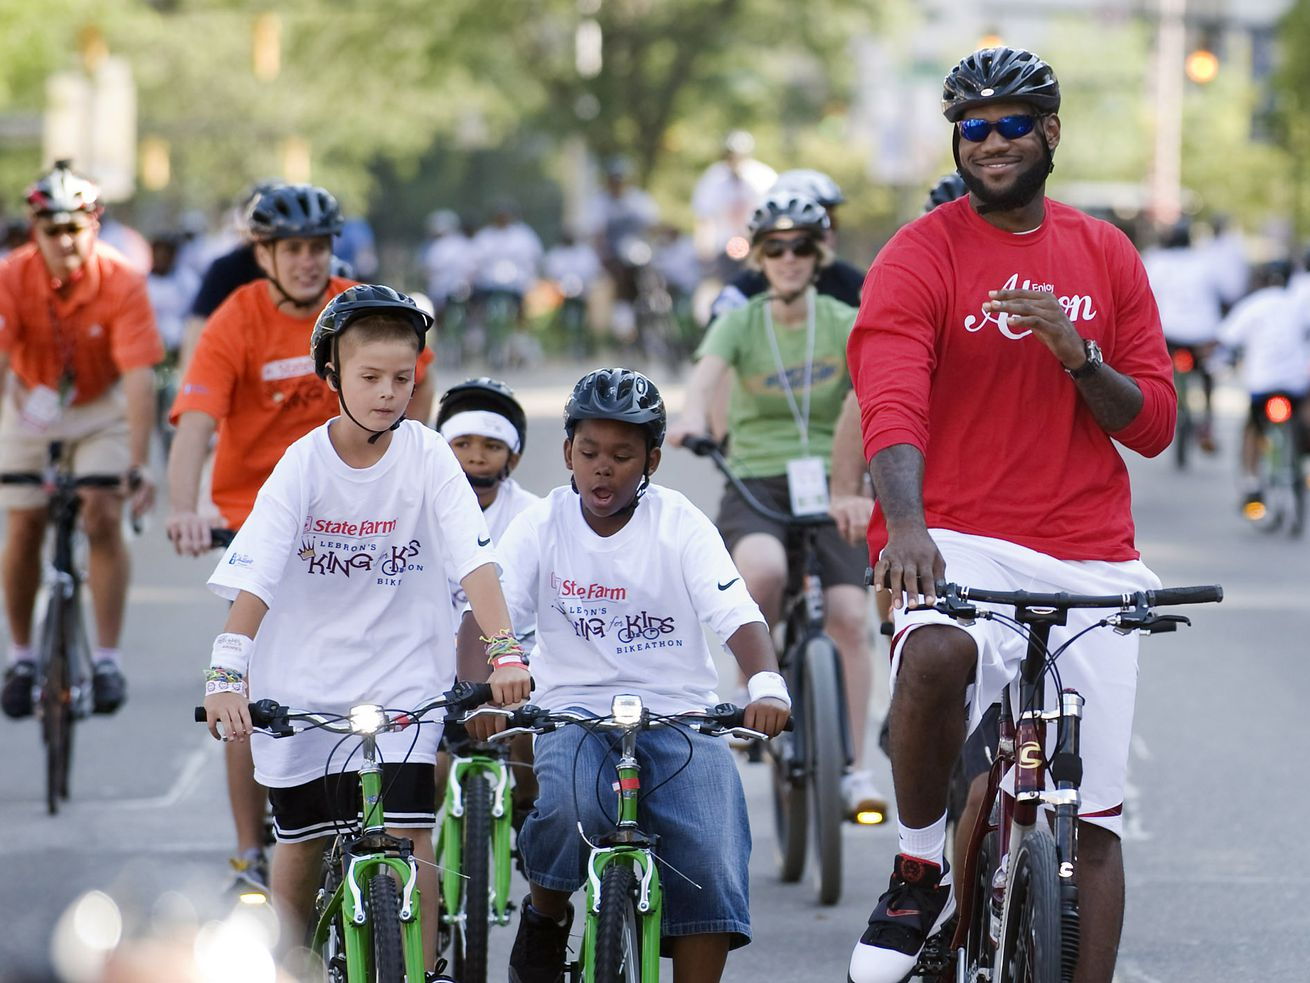 LeBron James at a Bike-a-thon for kids in Akron, Ohio.